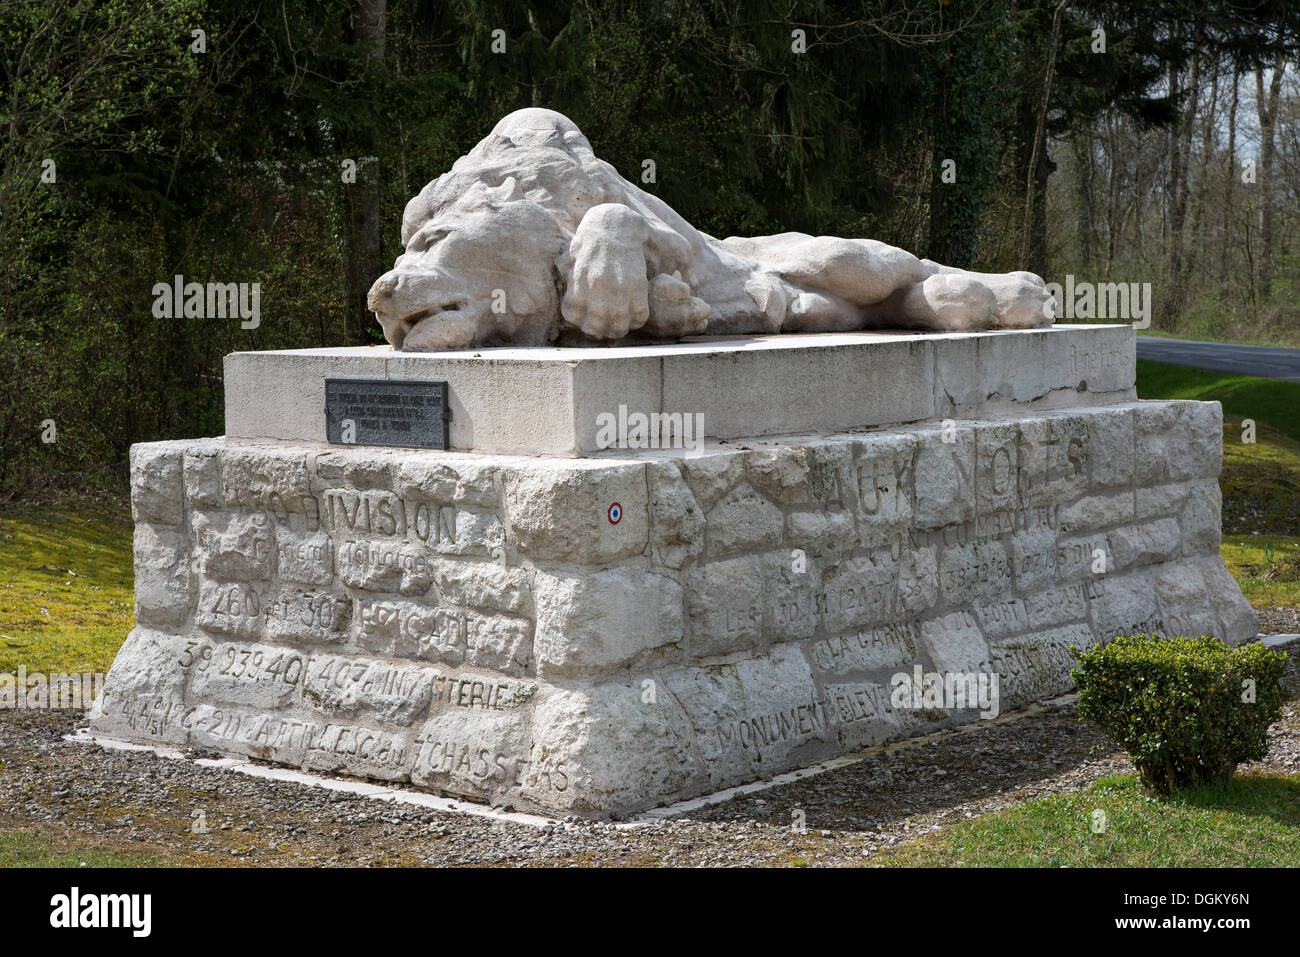 Grave monument with a lion sculpture for fallen Belgian soldiers, compounds of the Battle of Verdun, First World War, Verdun - Stock Image